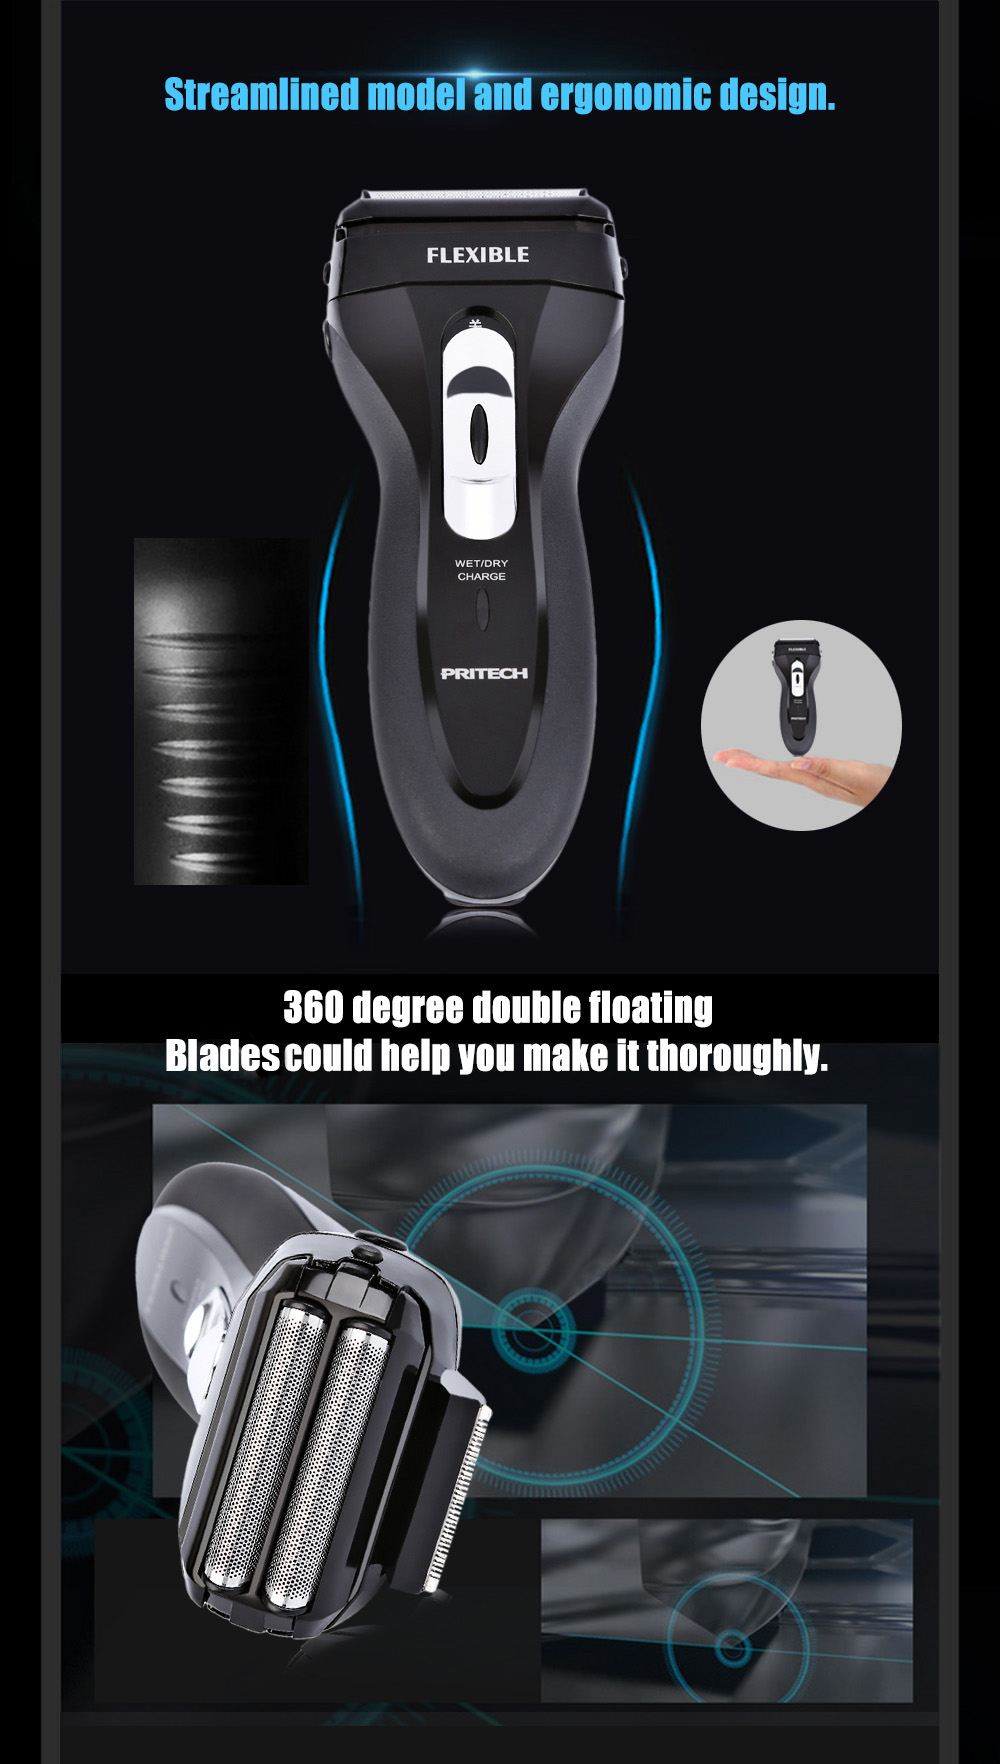 Pritech RSM - 1308 3D Rechargeable Reciprocating Heads Shaver with Trimmer for Men